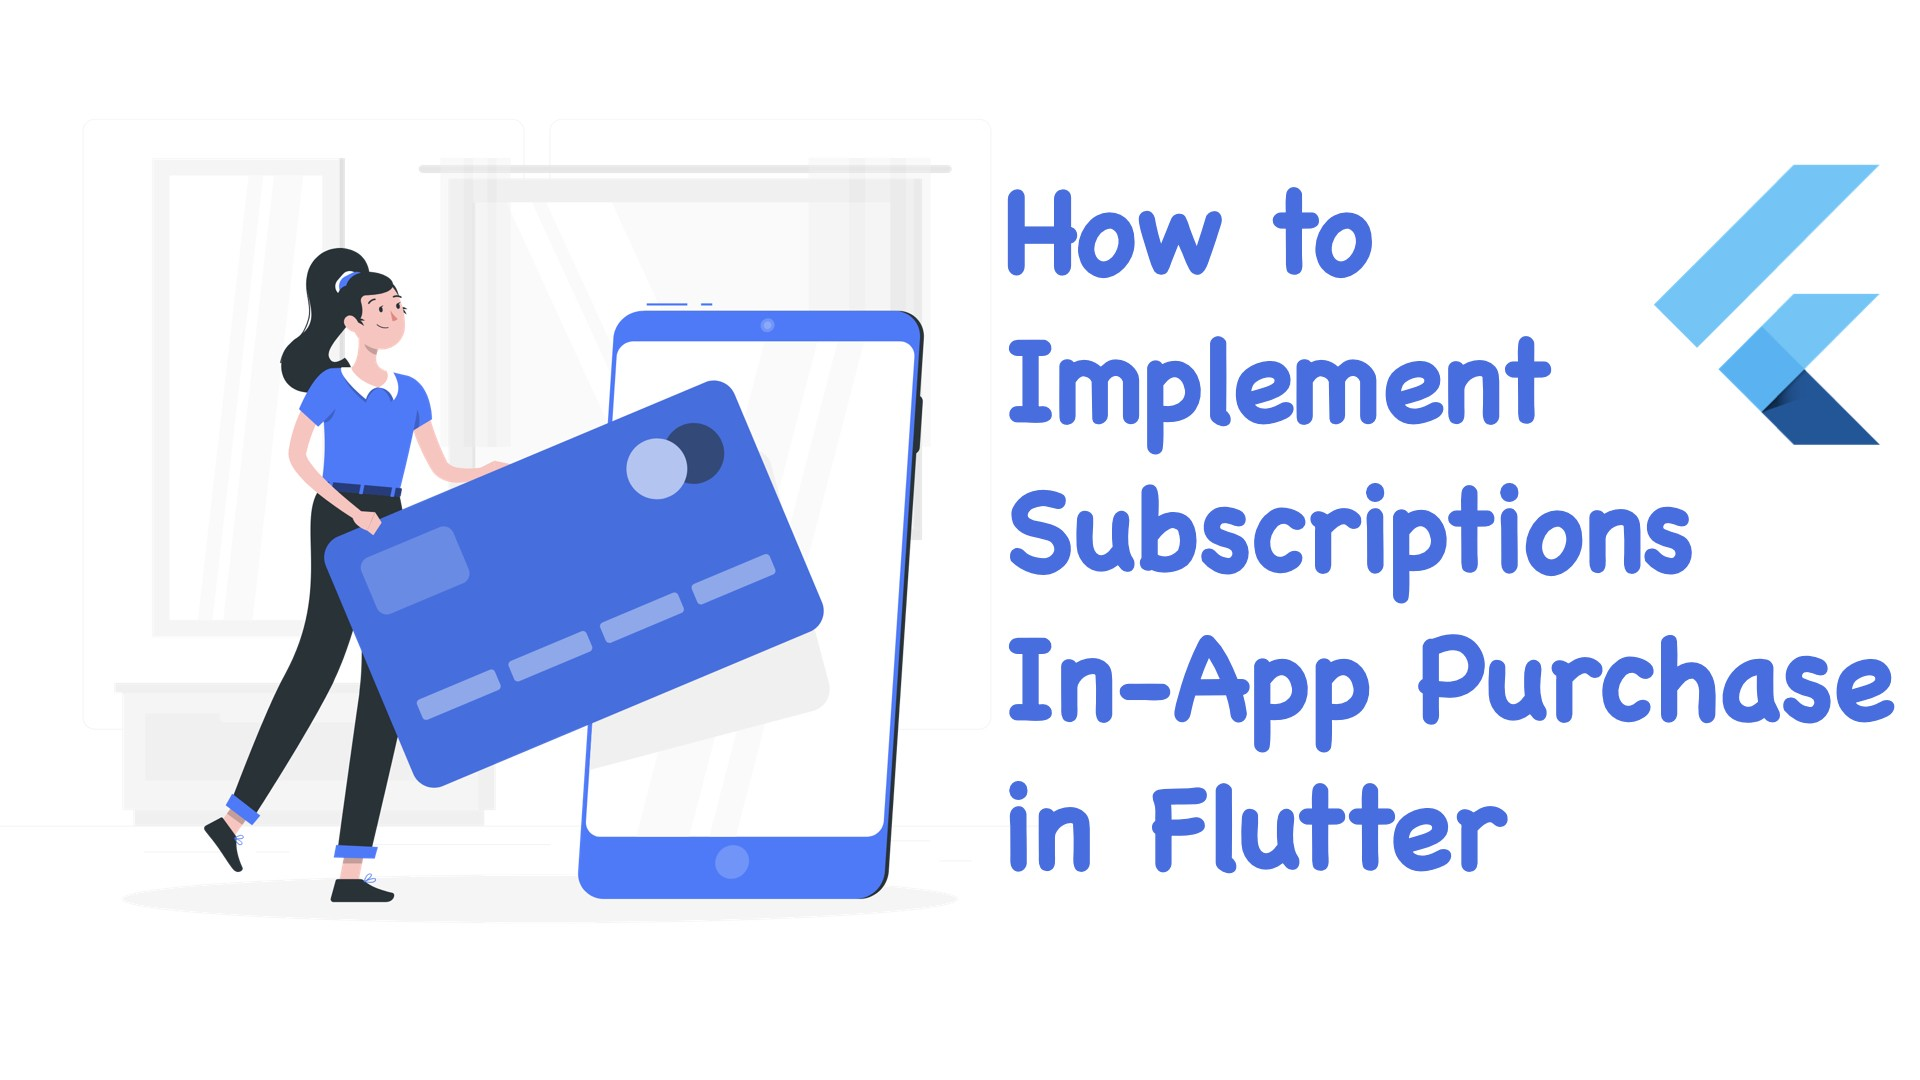 How to Implement Subscriptions In-App Purchase in Flutter